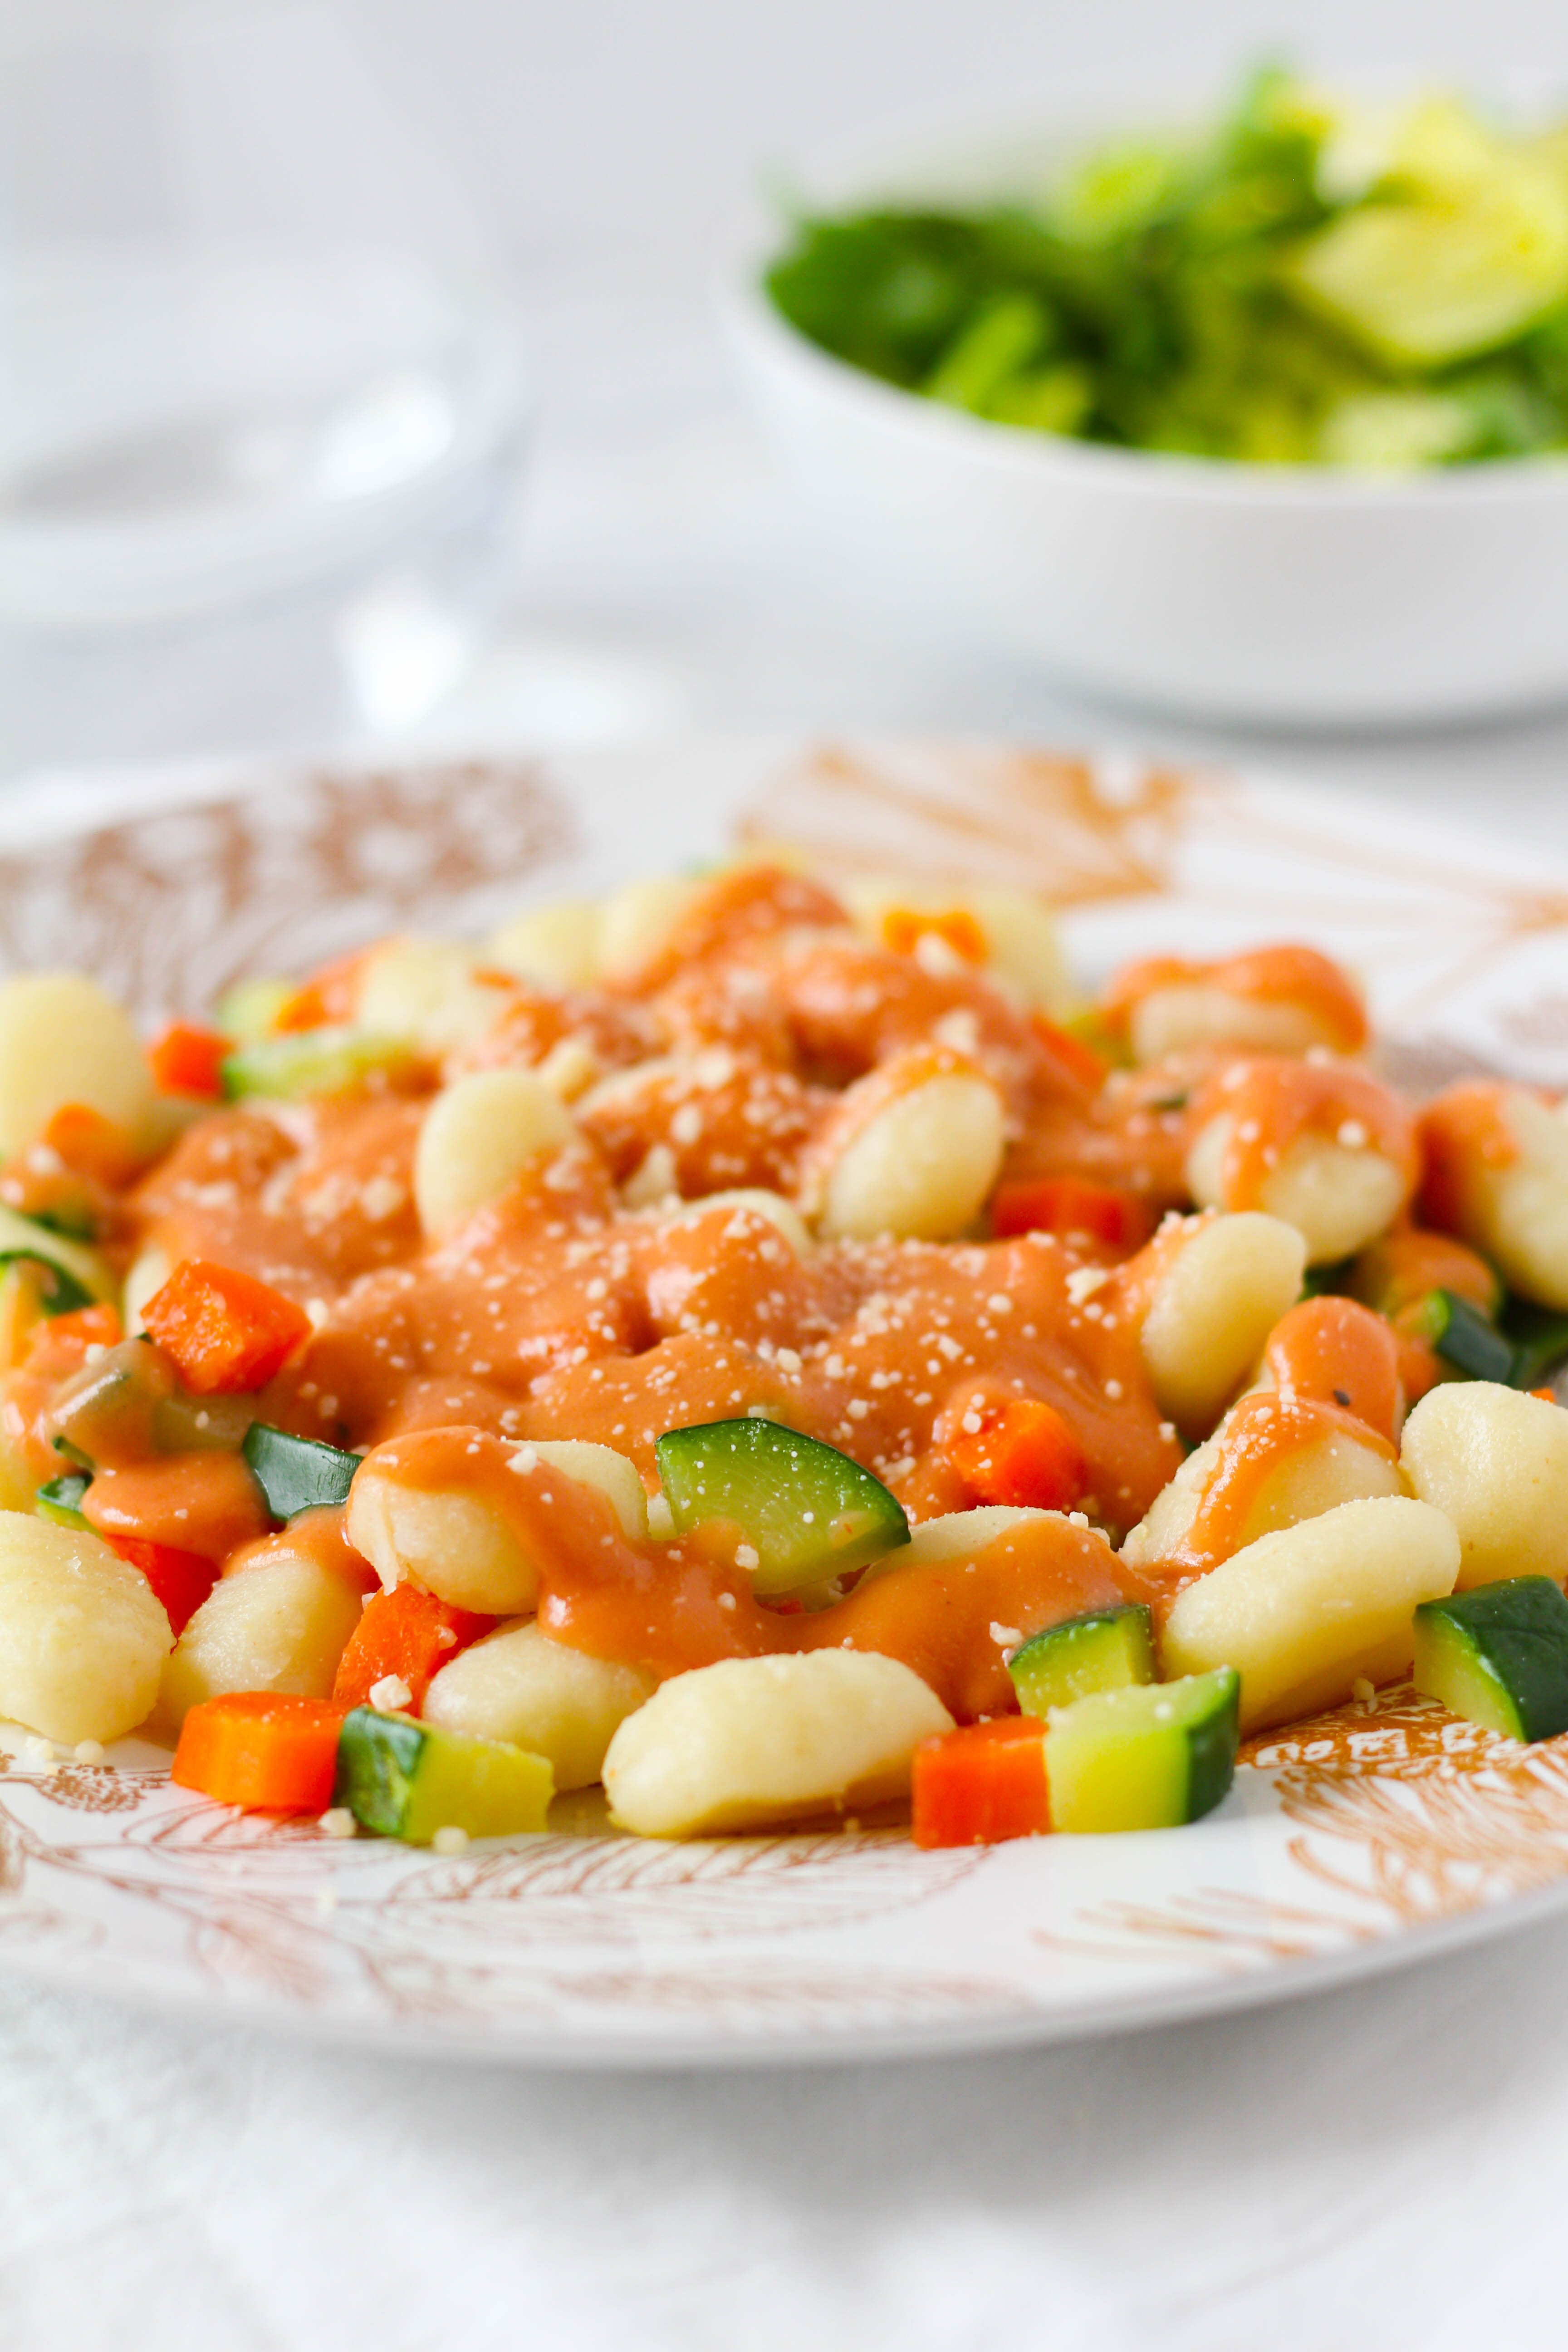 Tender gnocchi tossed with a French sauce made with bechamel, chicken stock and tomato puree with a deep, complex flavor. This Creamy Tomato Sauce tastes delicious with gnocchi and fresh vegetables!